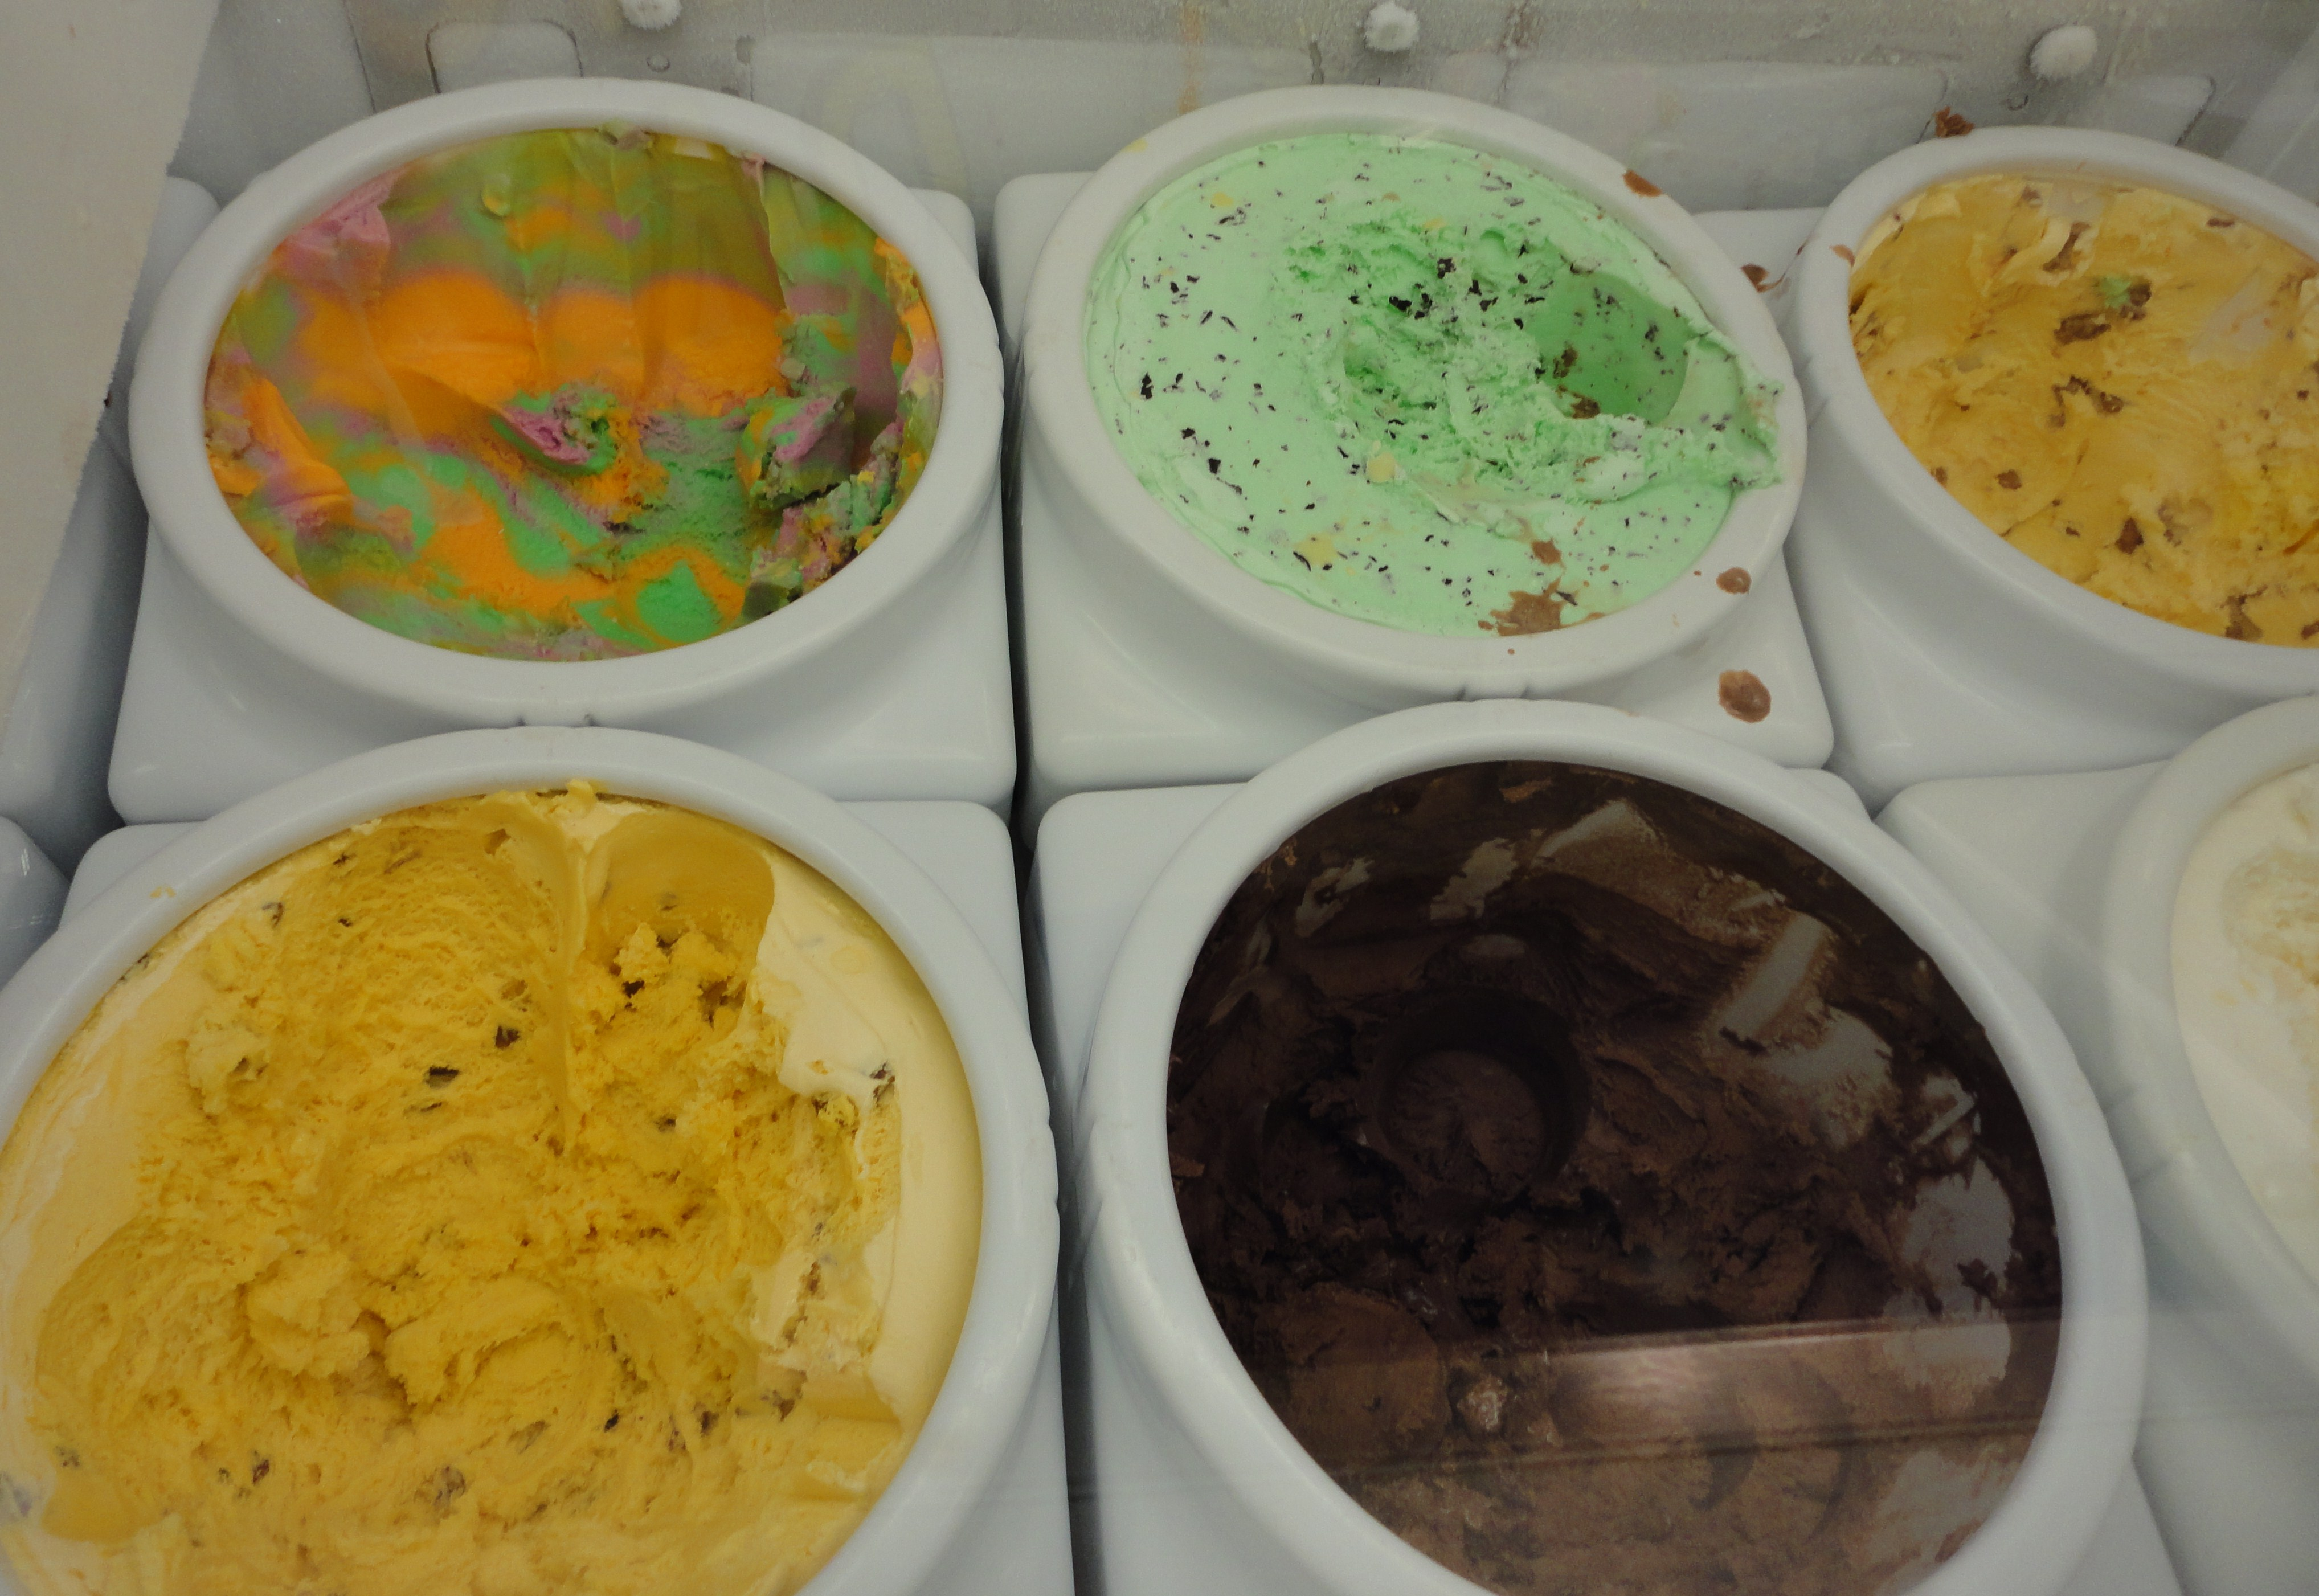 Some Of The Flavors That Have Been Popularized Over Years Include Mint Chip Birthday Cake Rainbow Sherbet Pistachio Coconut Pineapple